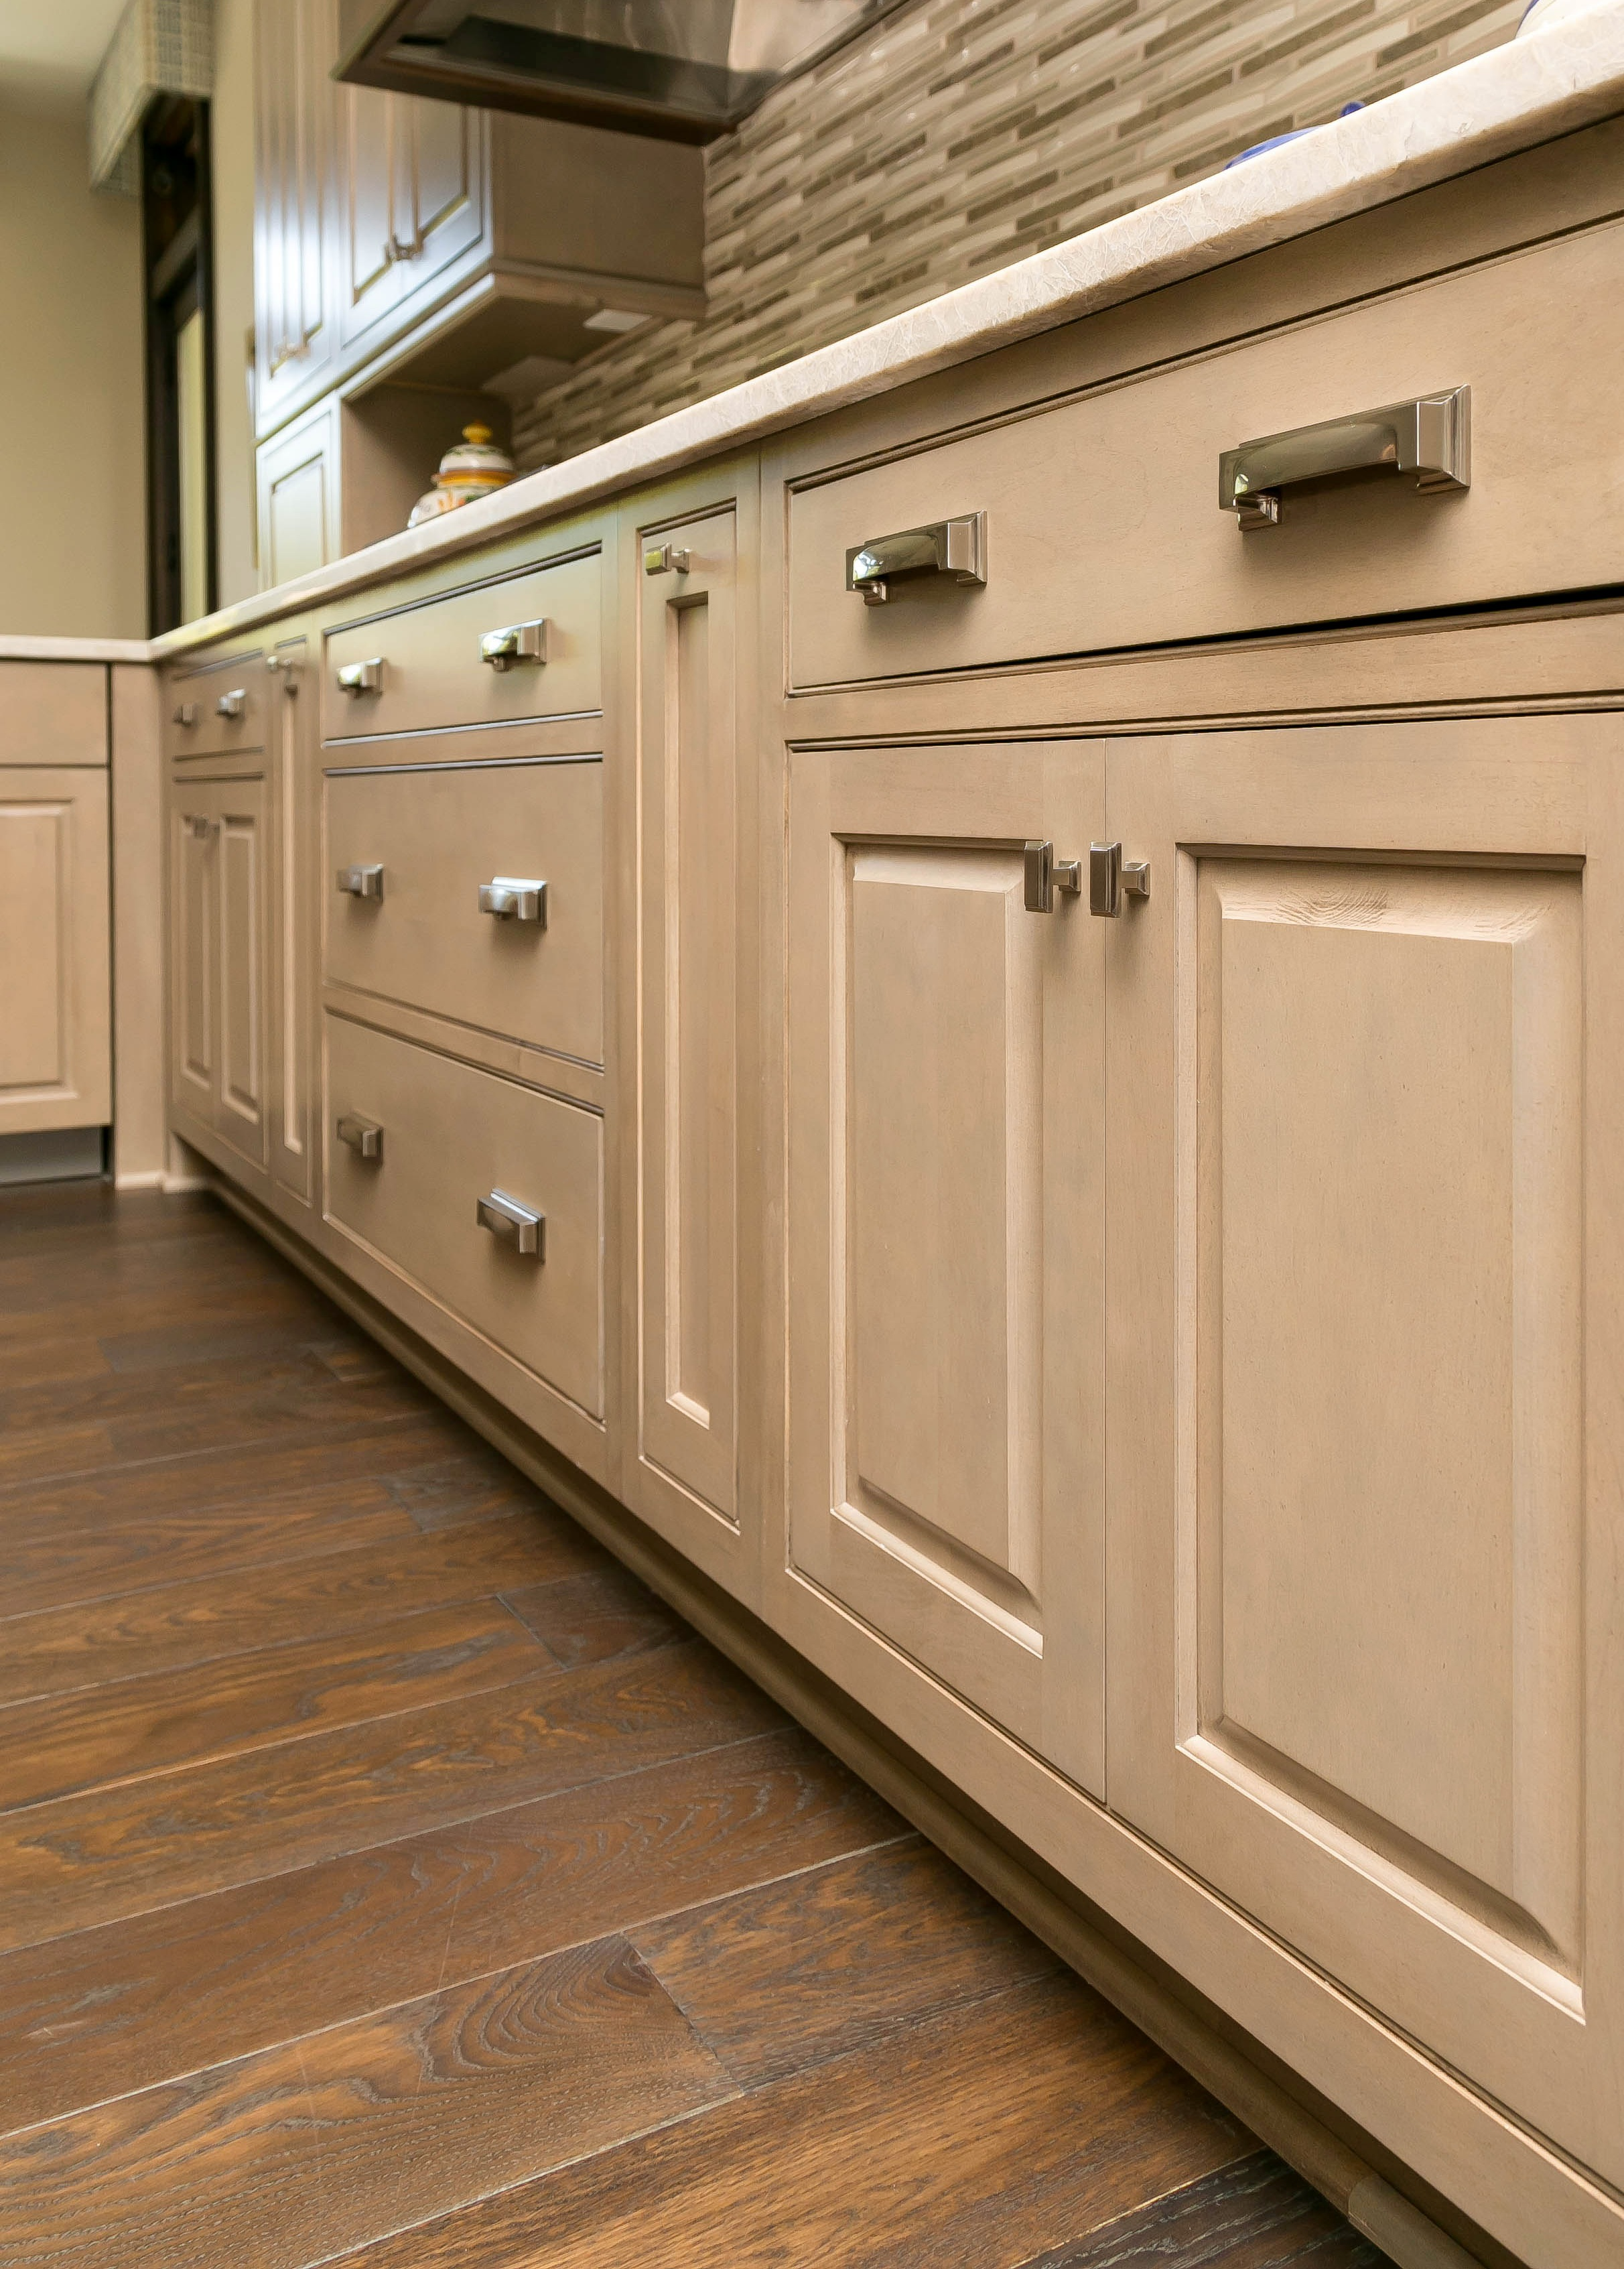 Southeast Kitchens - Cabinet Sales, Installation, and ...